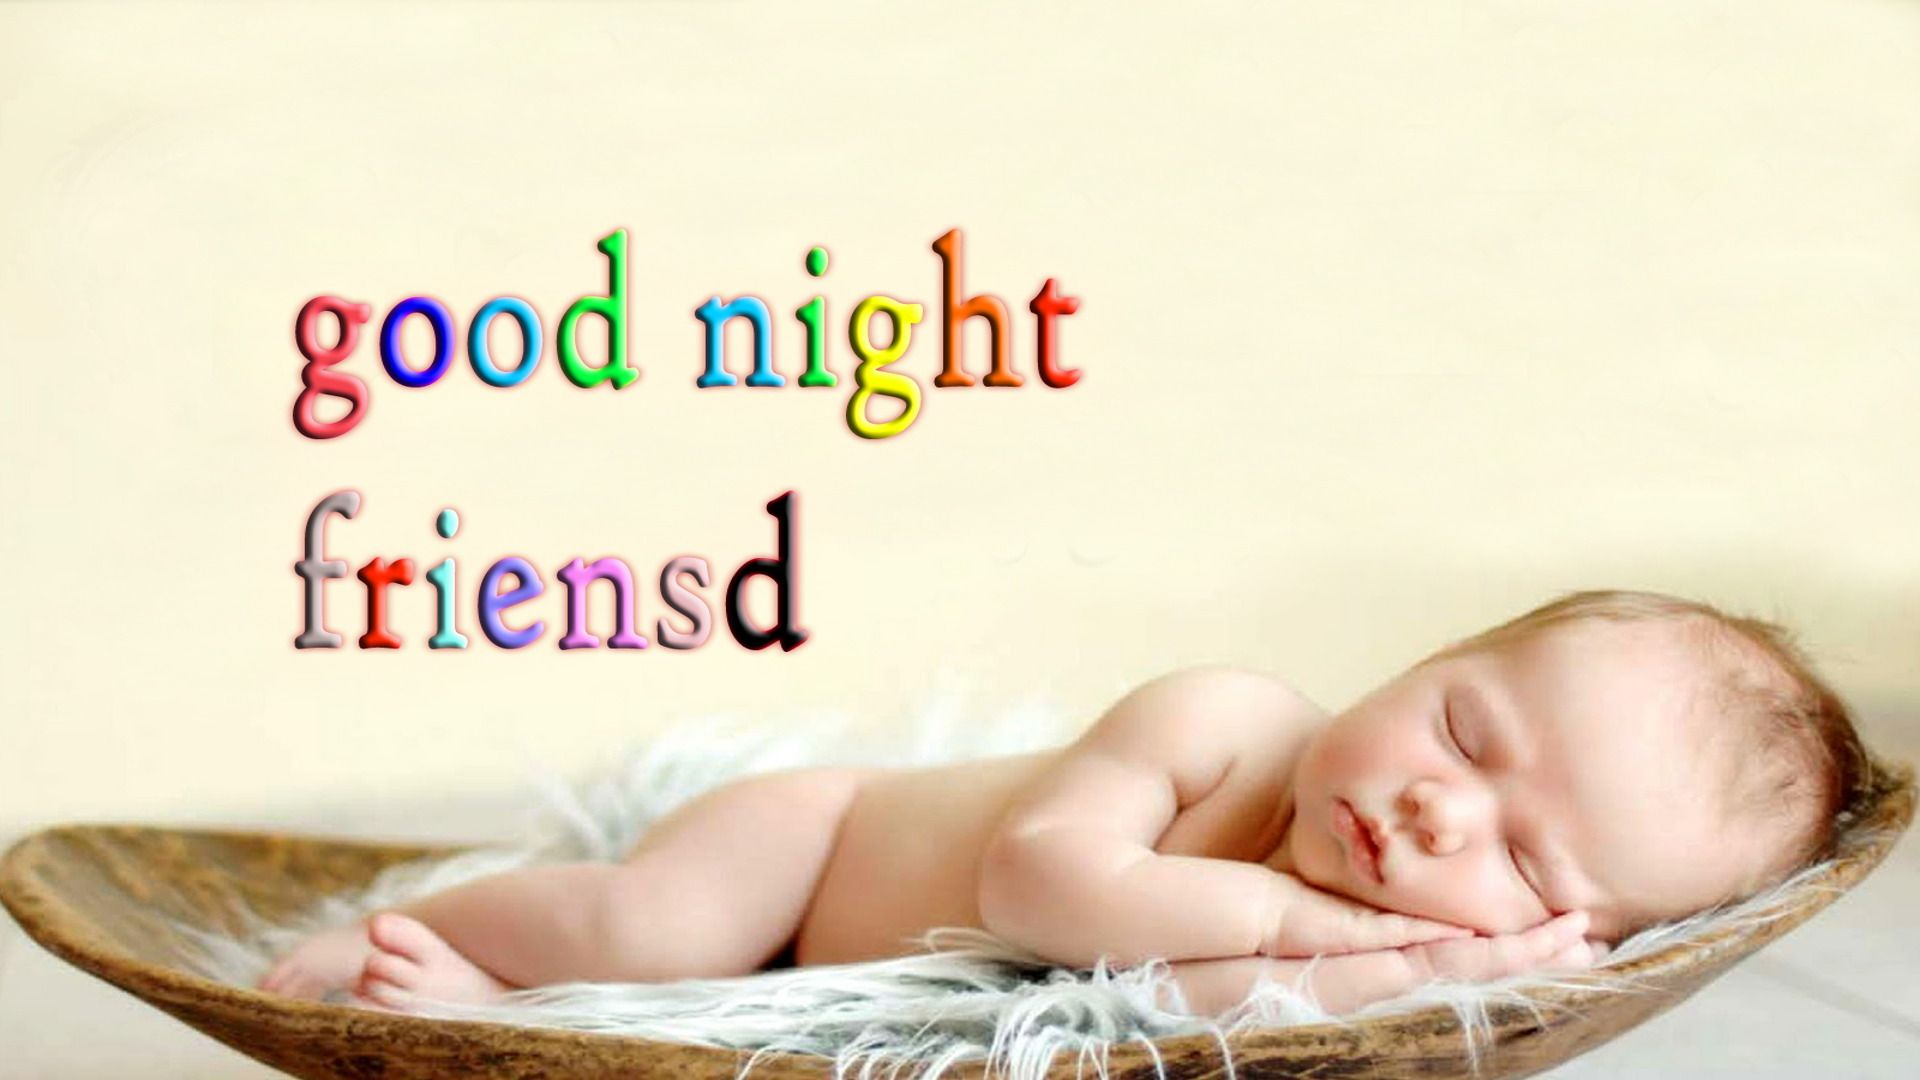 Wallpaper download mood off - Good Night Sad Sms Pictures Wallpapers Scraps Funny Scraps For Girl Friend